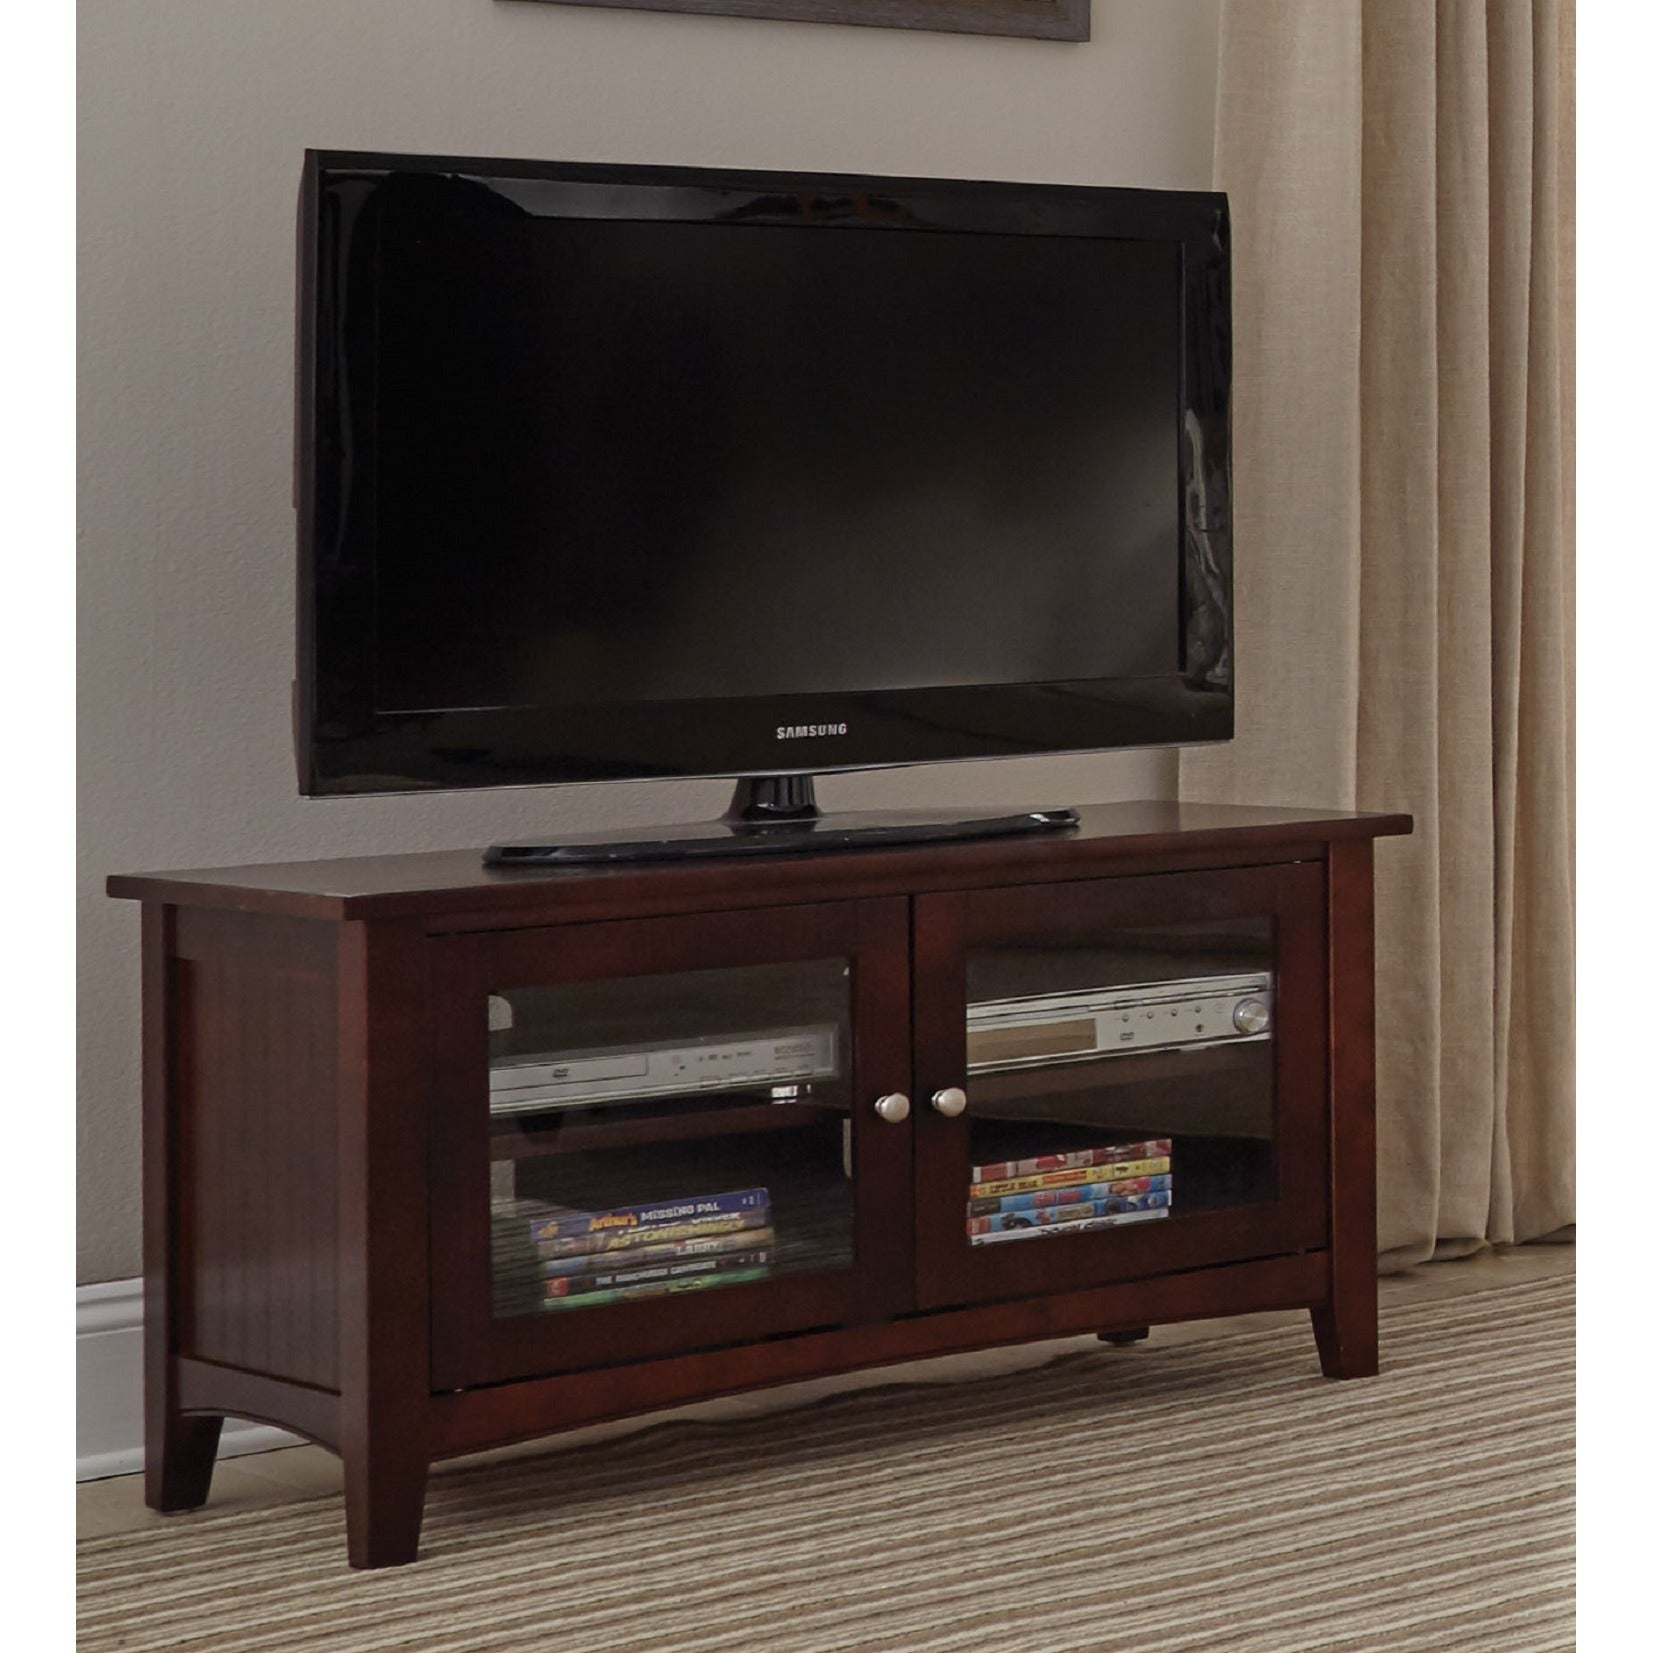 Copper Grove Taber 36 Inch Wood Tv Stand With Glass Doors Ebay